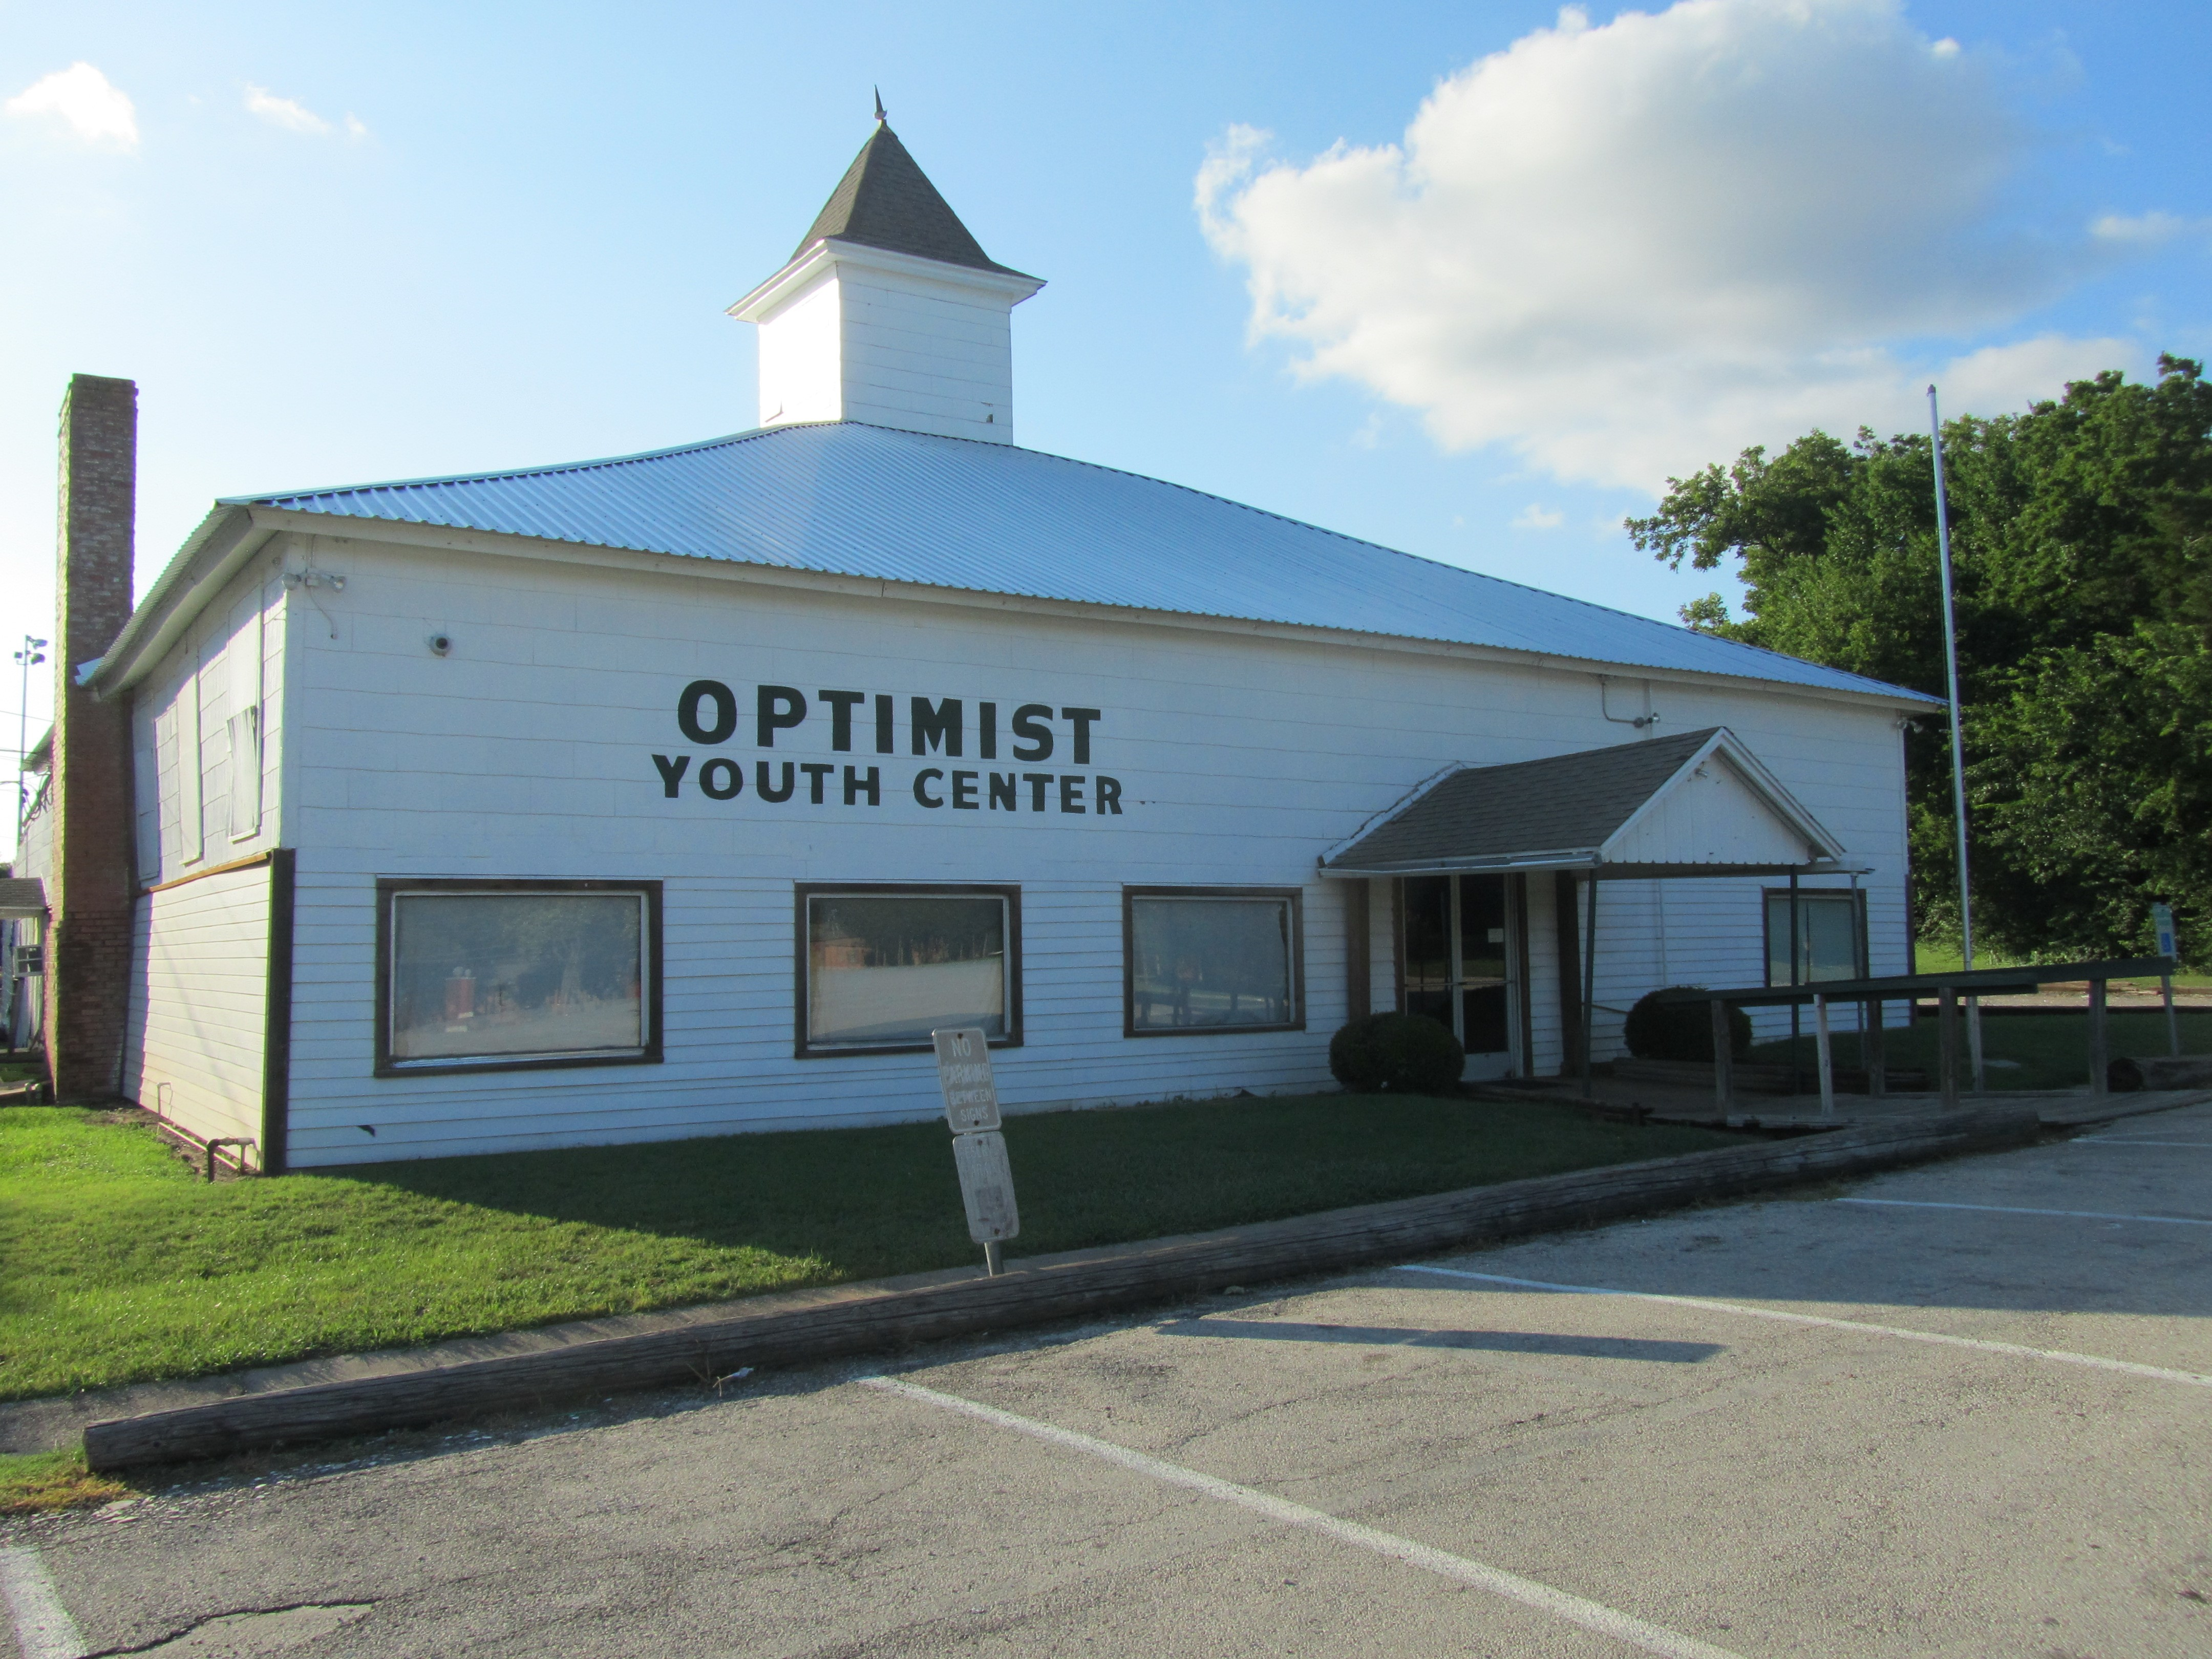 Optimist Youth Center